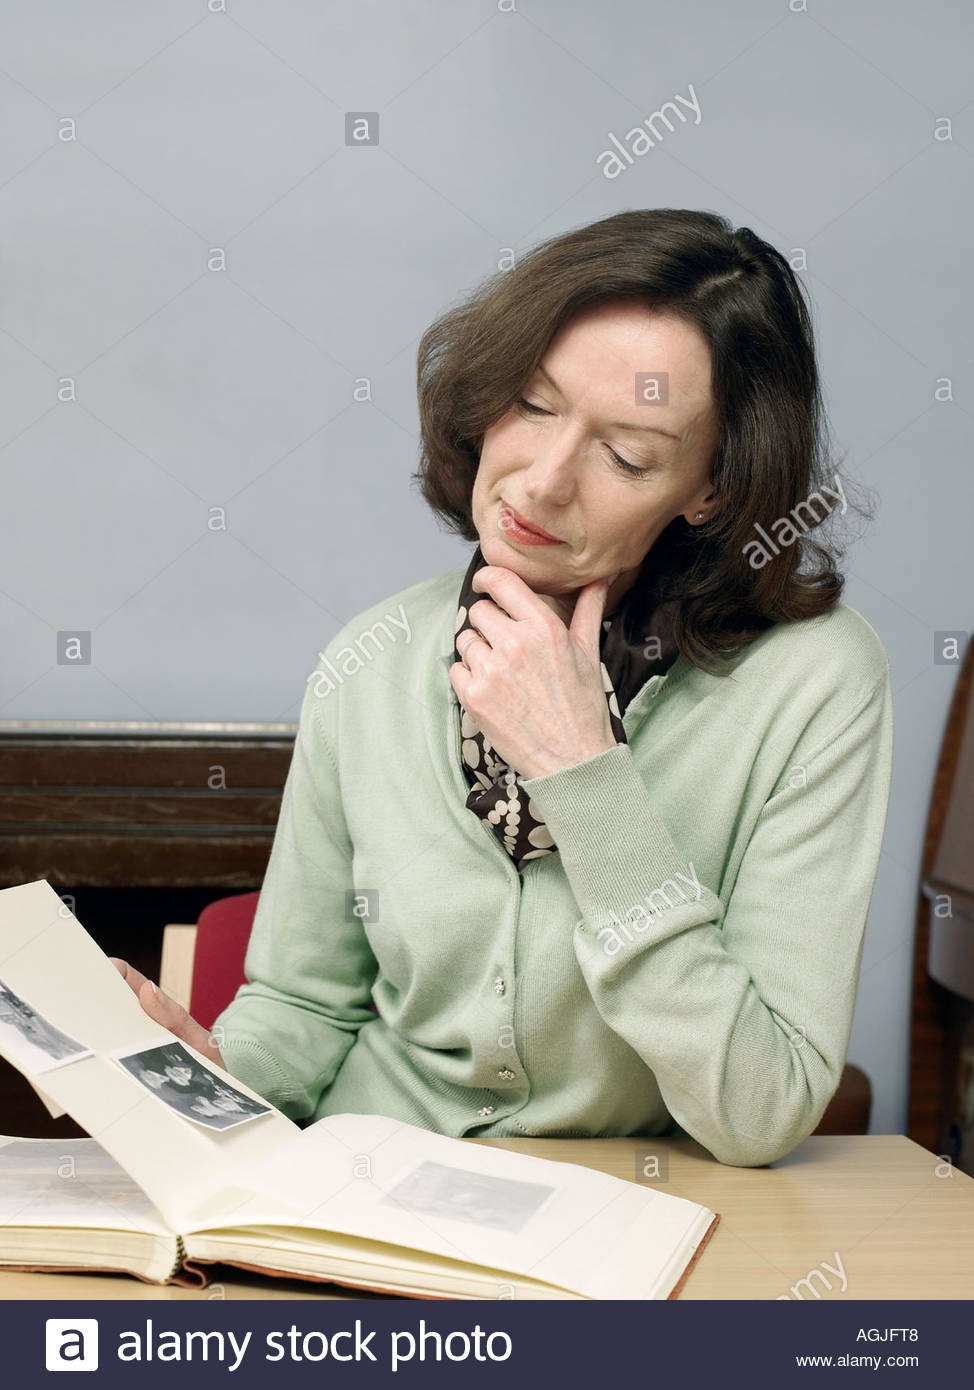 Woman looking at photo album - Stock Image